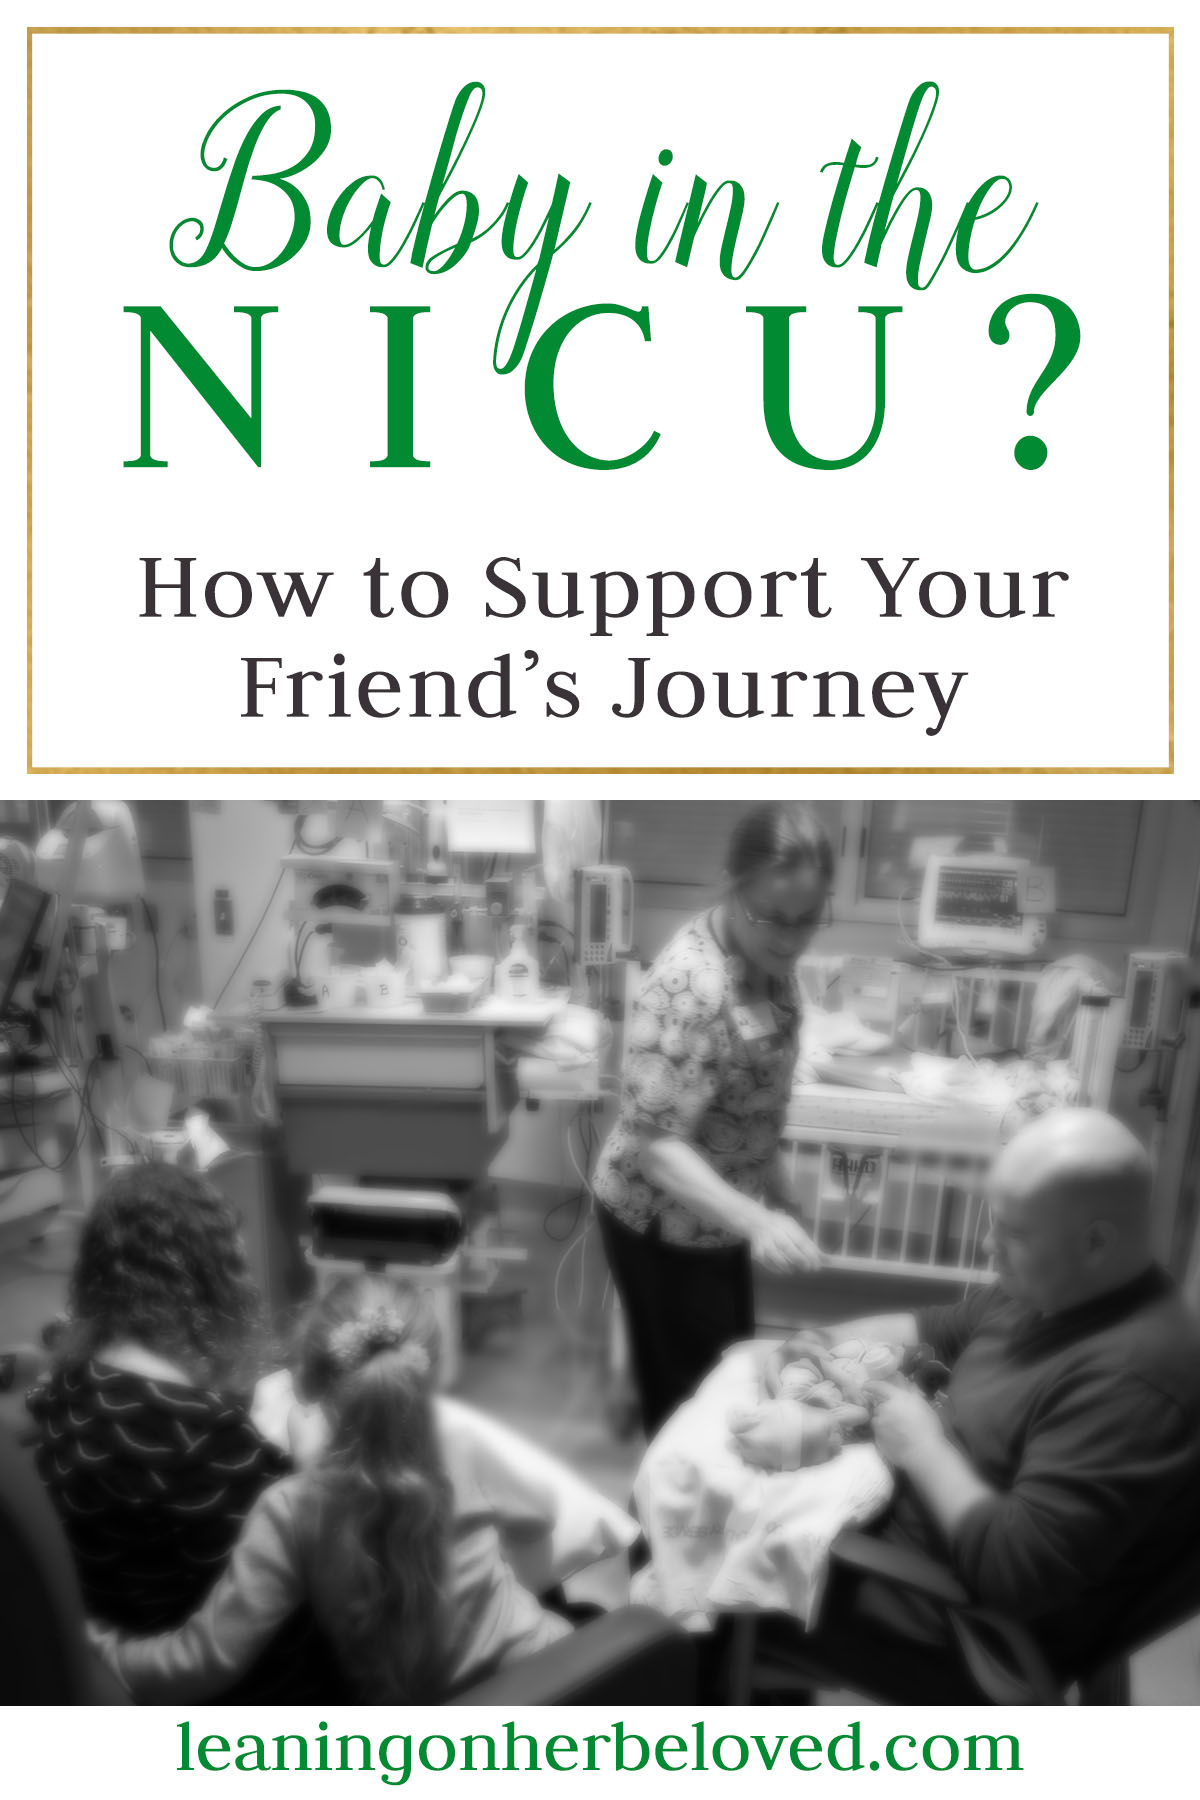 Here are tips to help your friend that has a baby in the NICU to cope during a very difficult time